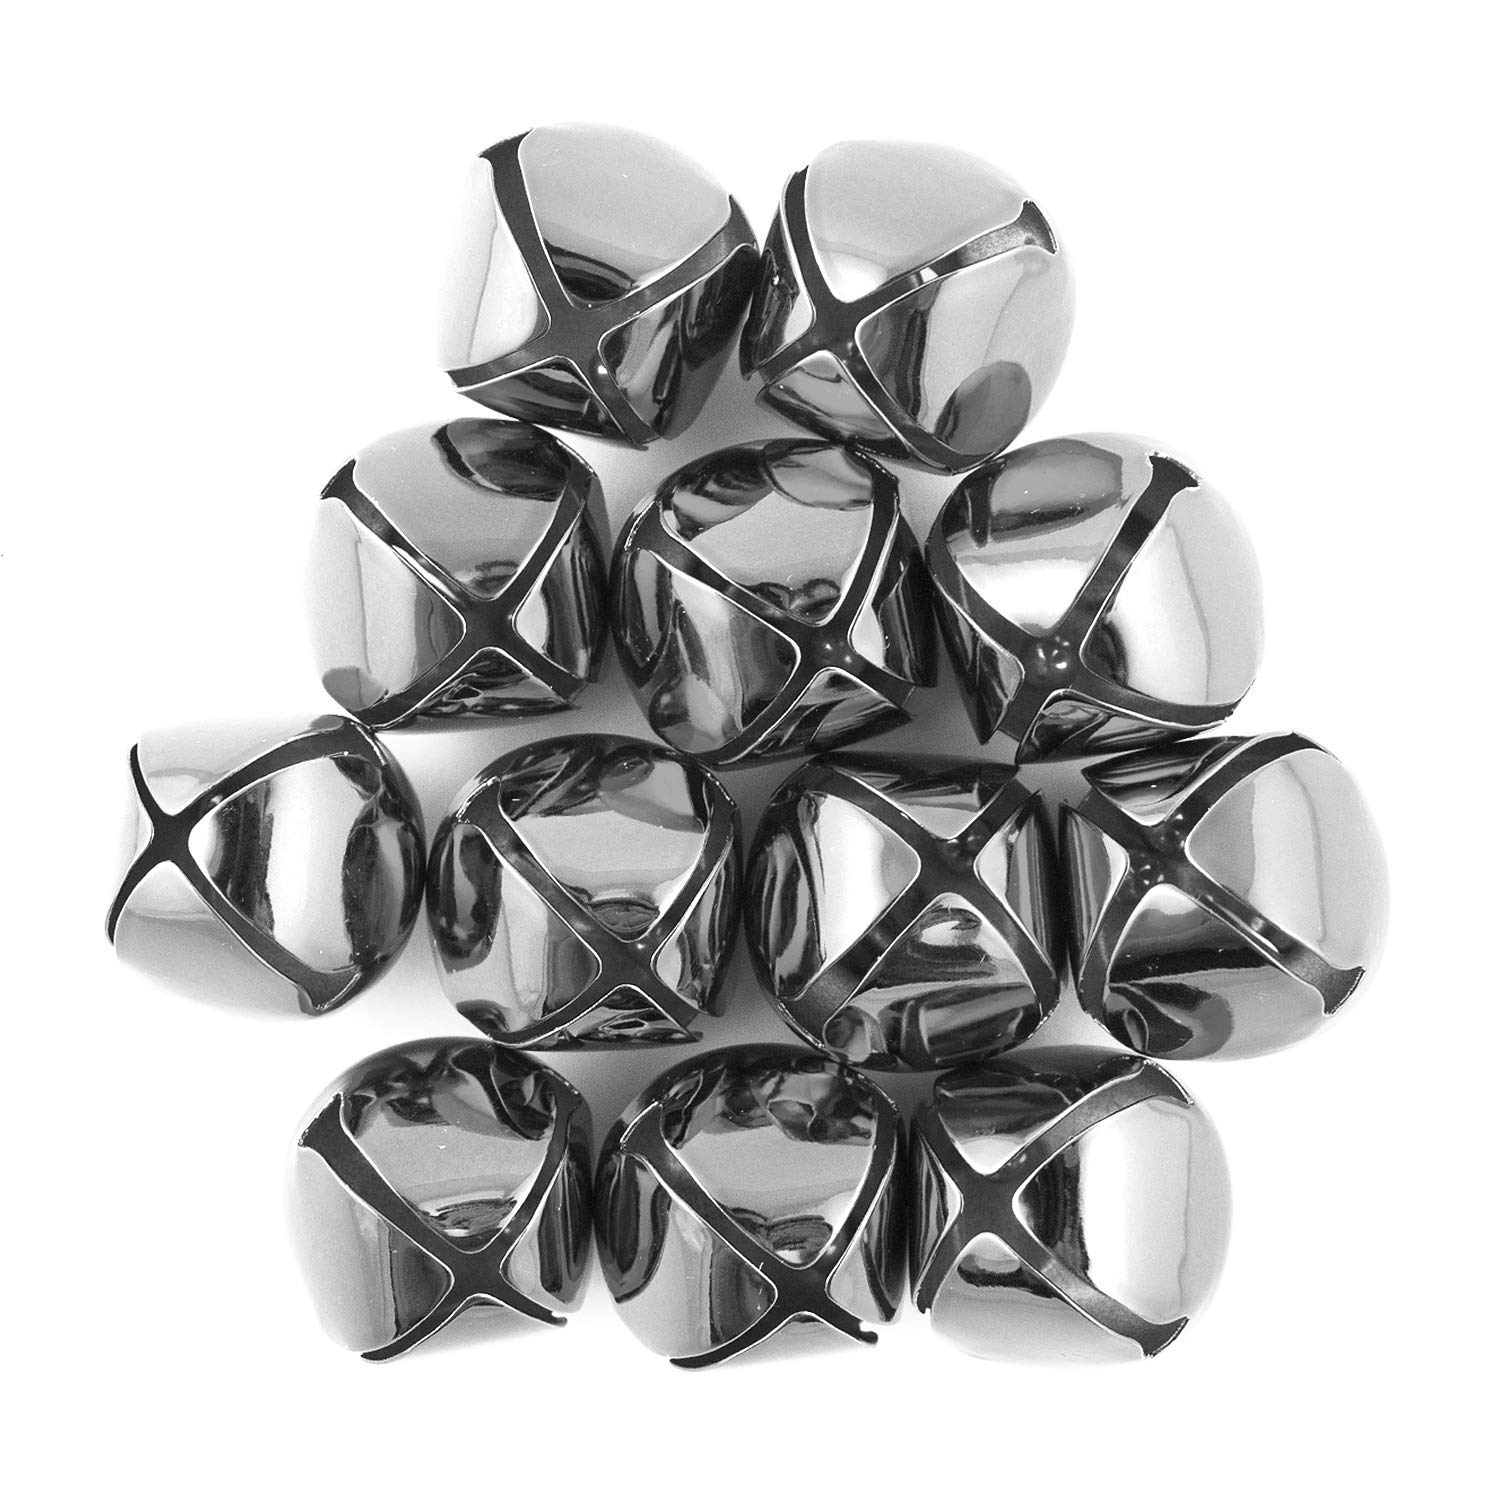 1.5 Inch 36mm Extra Large Giant Jumbo Craft Silver Jingle Bells Bulk 100 Pieces by Art Cove